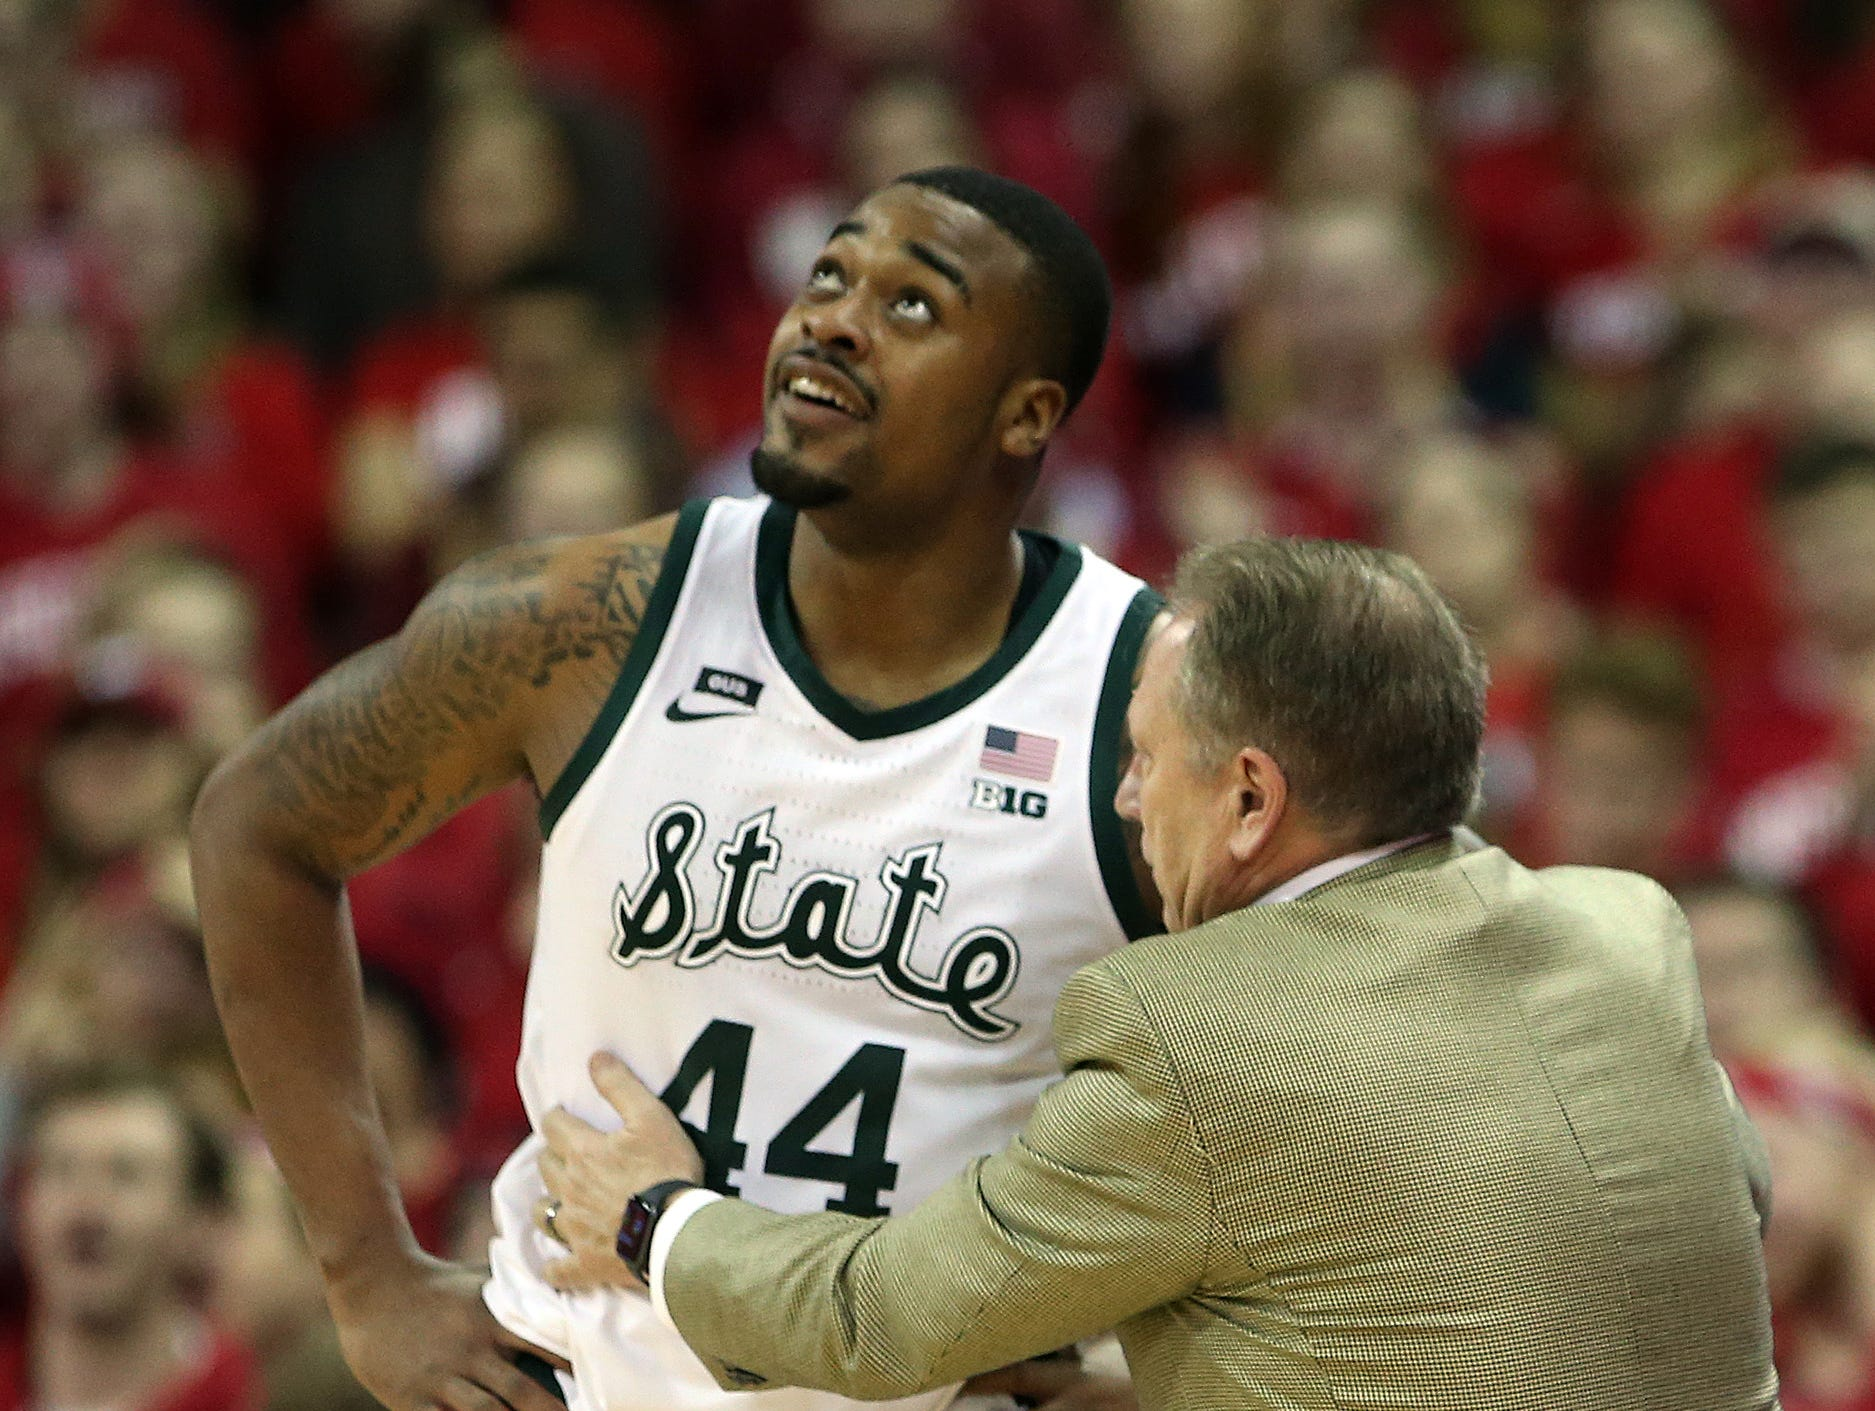 Couch chat replay: Redshirt for Josh Langford? Nick Ward returning? Winston or Valentine?